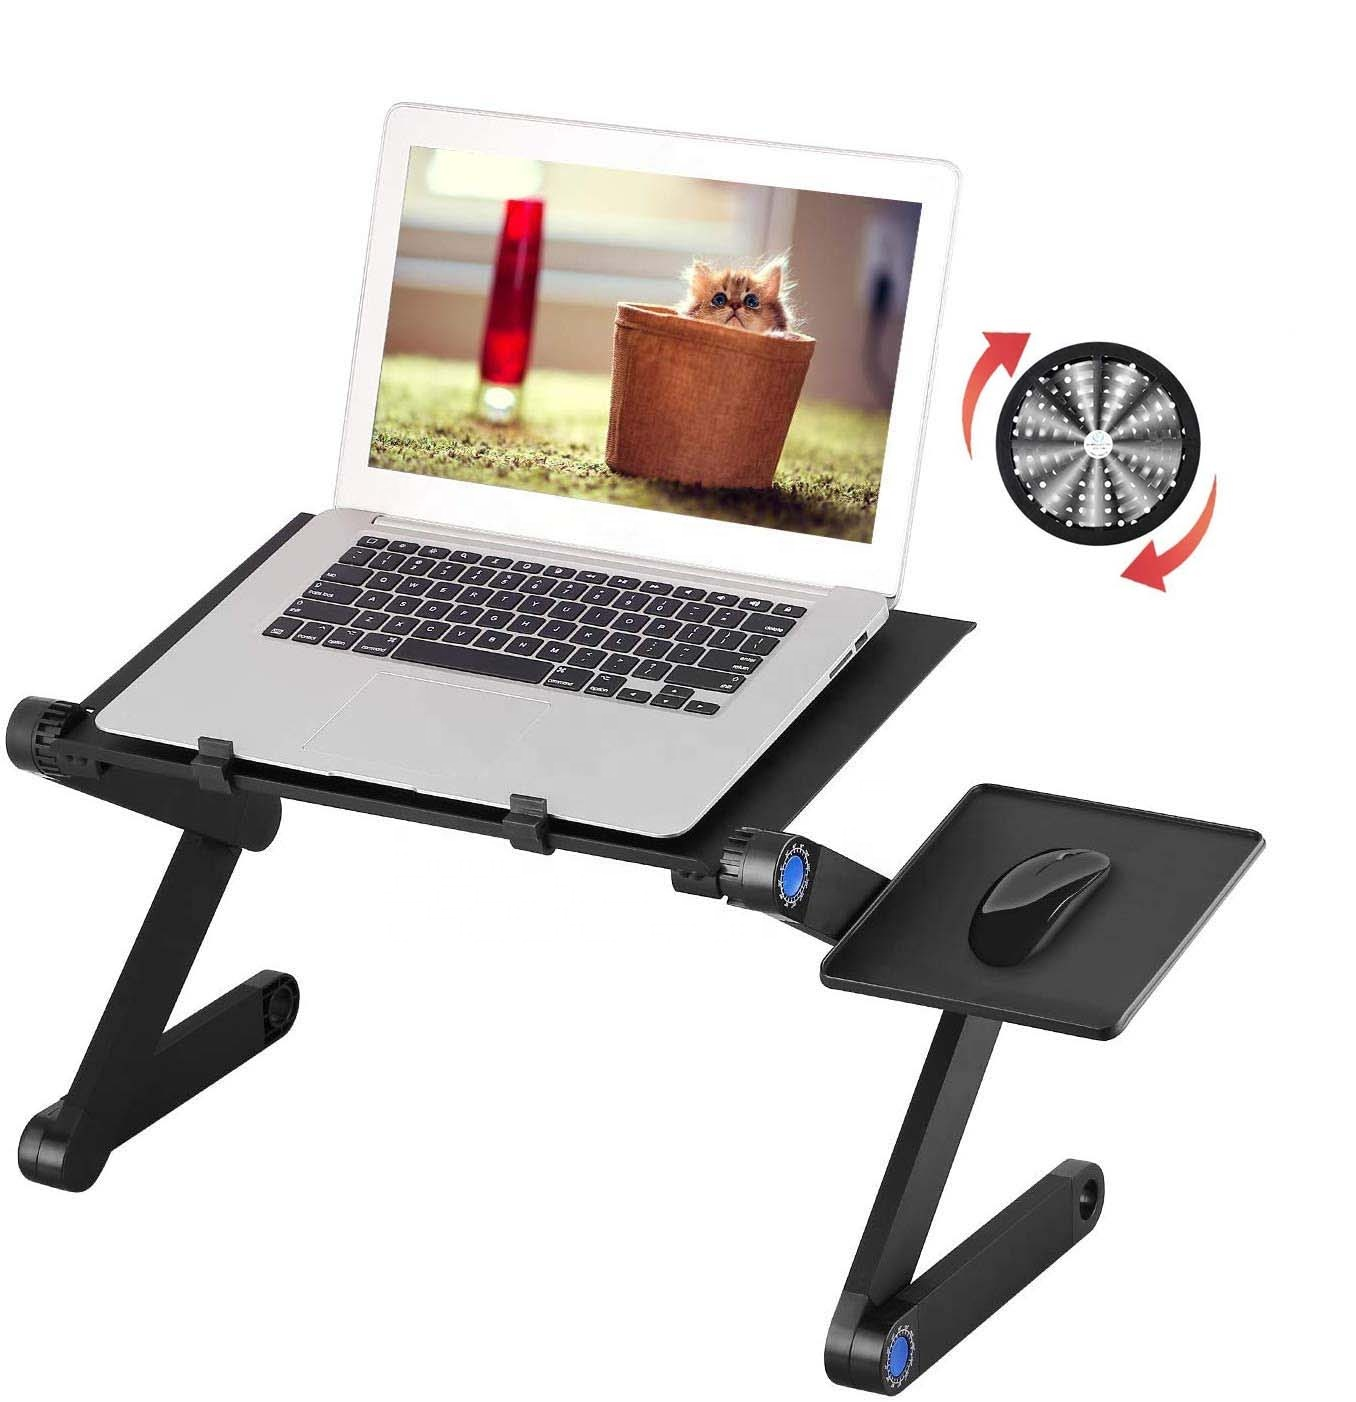 Portable <strong>Laptop</strong> Desk Sofa Stand, <strong>Laptop</strong> <strong>Folding</strong> <strong>Table</strong>, Notebook <strong>Table</strong> With Cool Fans &amp; Removable Mouse Tray &amp; Anti-Slip Bar